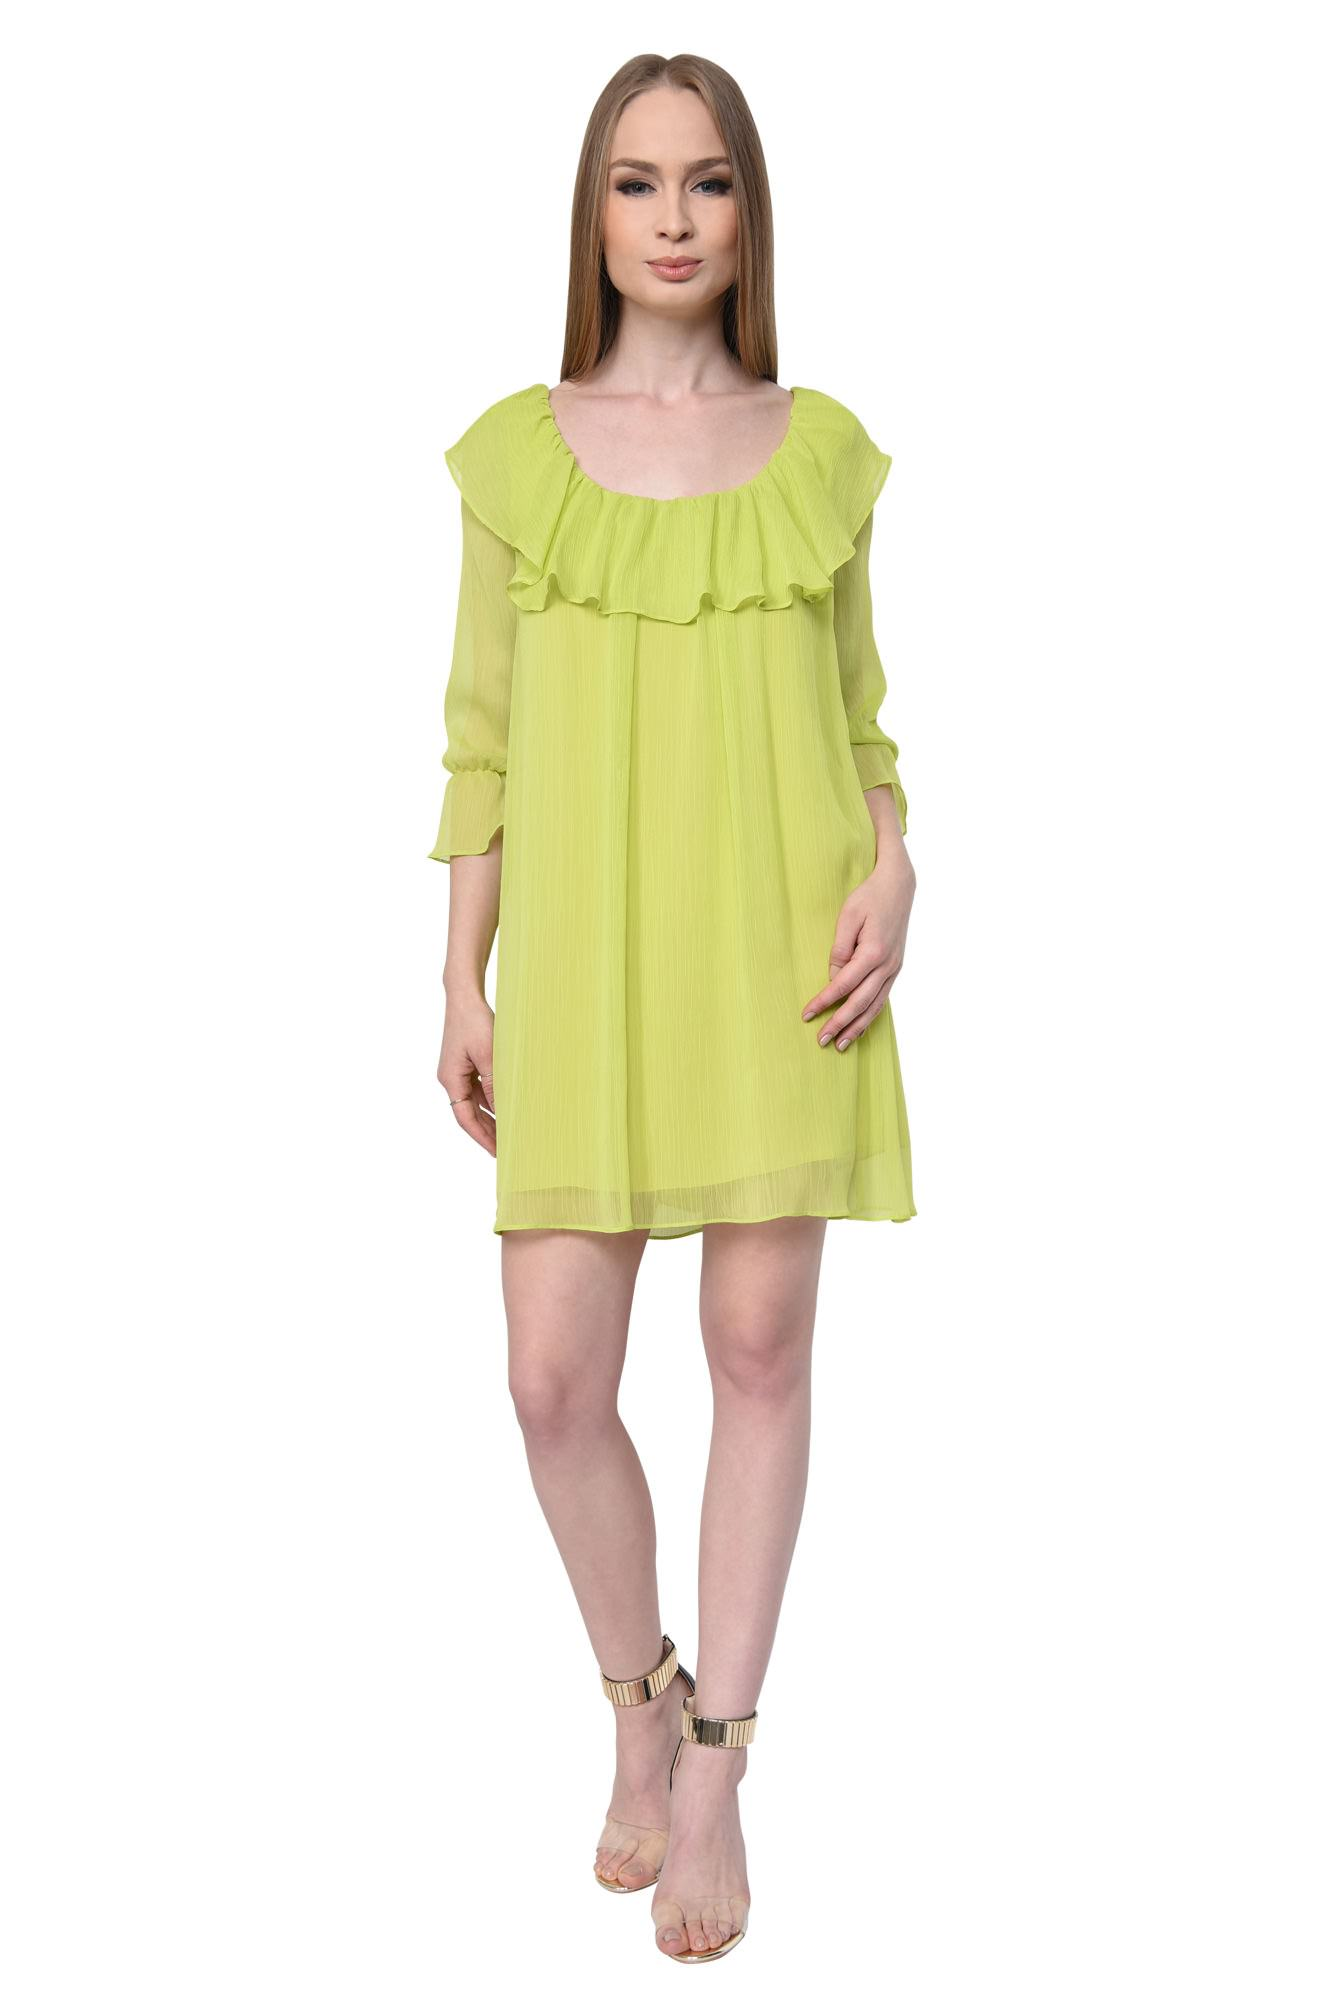 0 - ROCHIE CASUAL LEJERA R 322-LIME